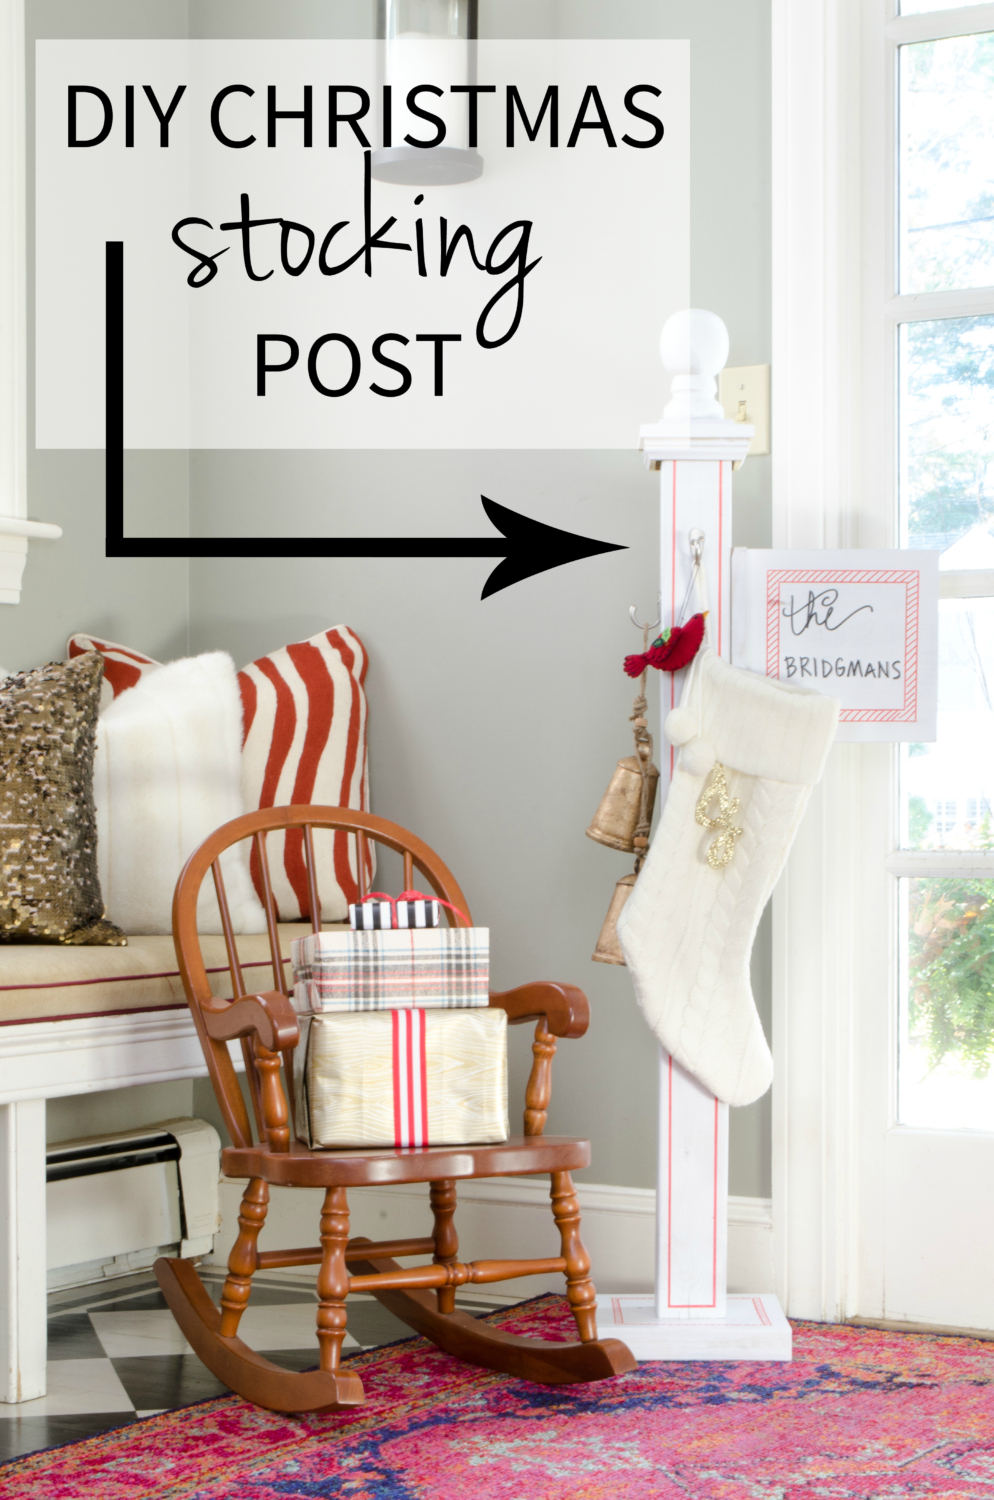 DIY Christmas stocking post - perfect if you don't have a mantle or just as a cute Christmas accent anywhere!